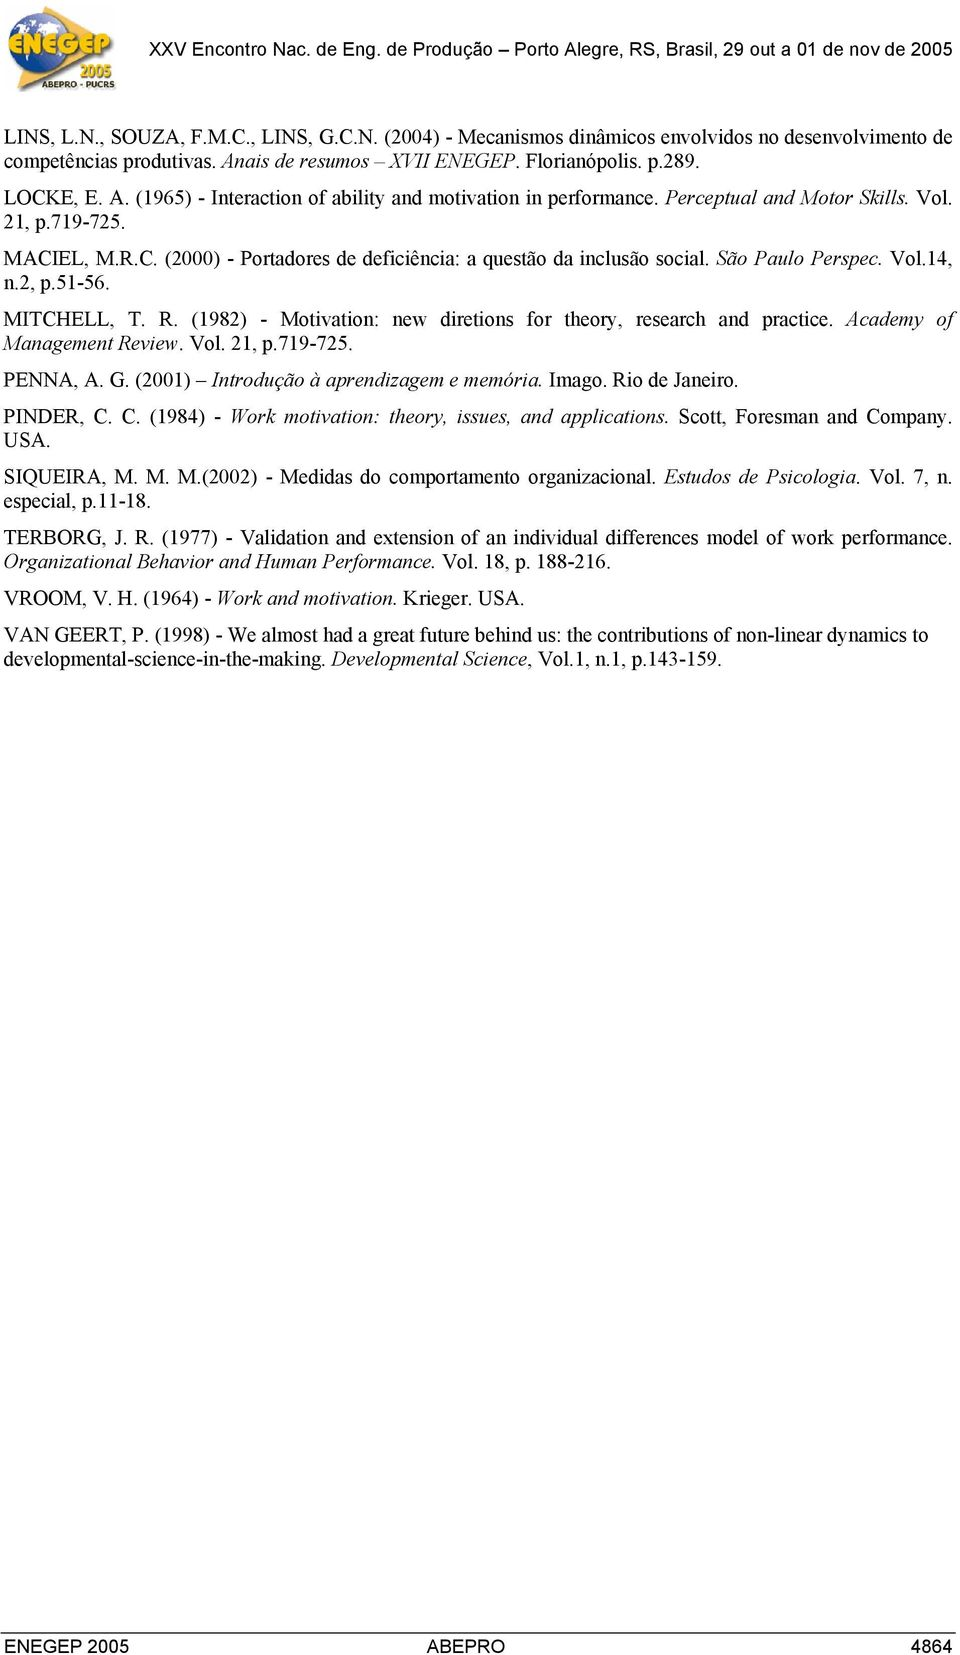 São Paulo Perspec. Vol.4, n., p.5-56. MITCHELL, T. R. (98) - Motvaton: new dretons for theory, research and practce. Academy of Management Revew. Vol., p.79-75. PENNA, A. G.